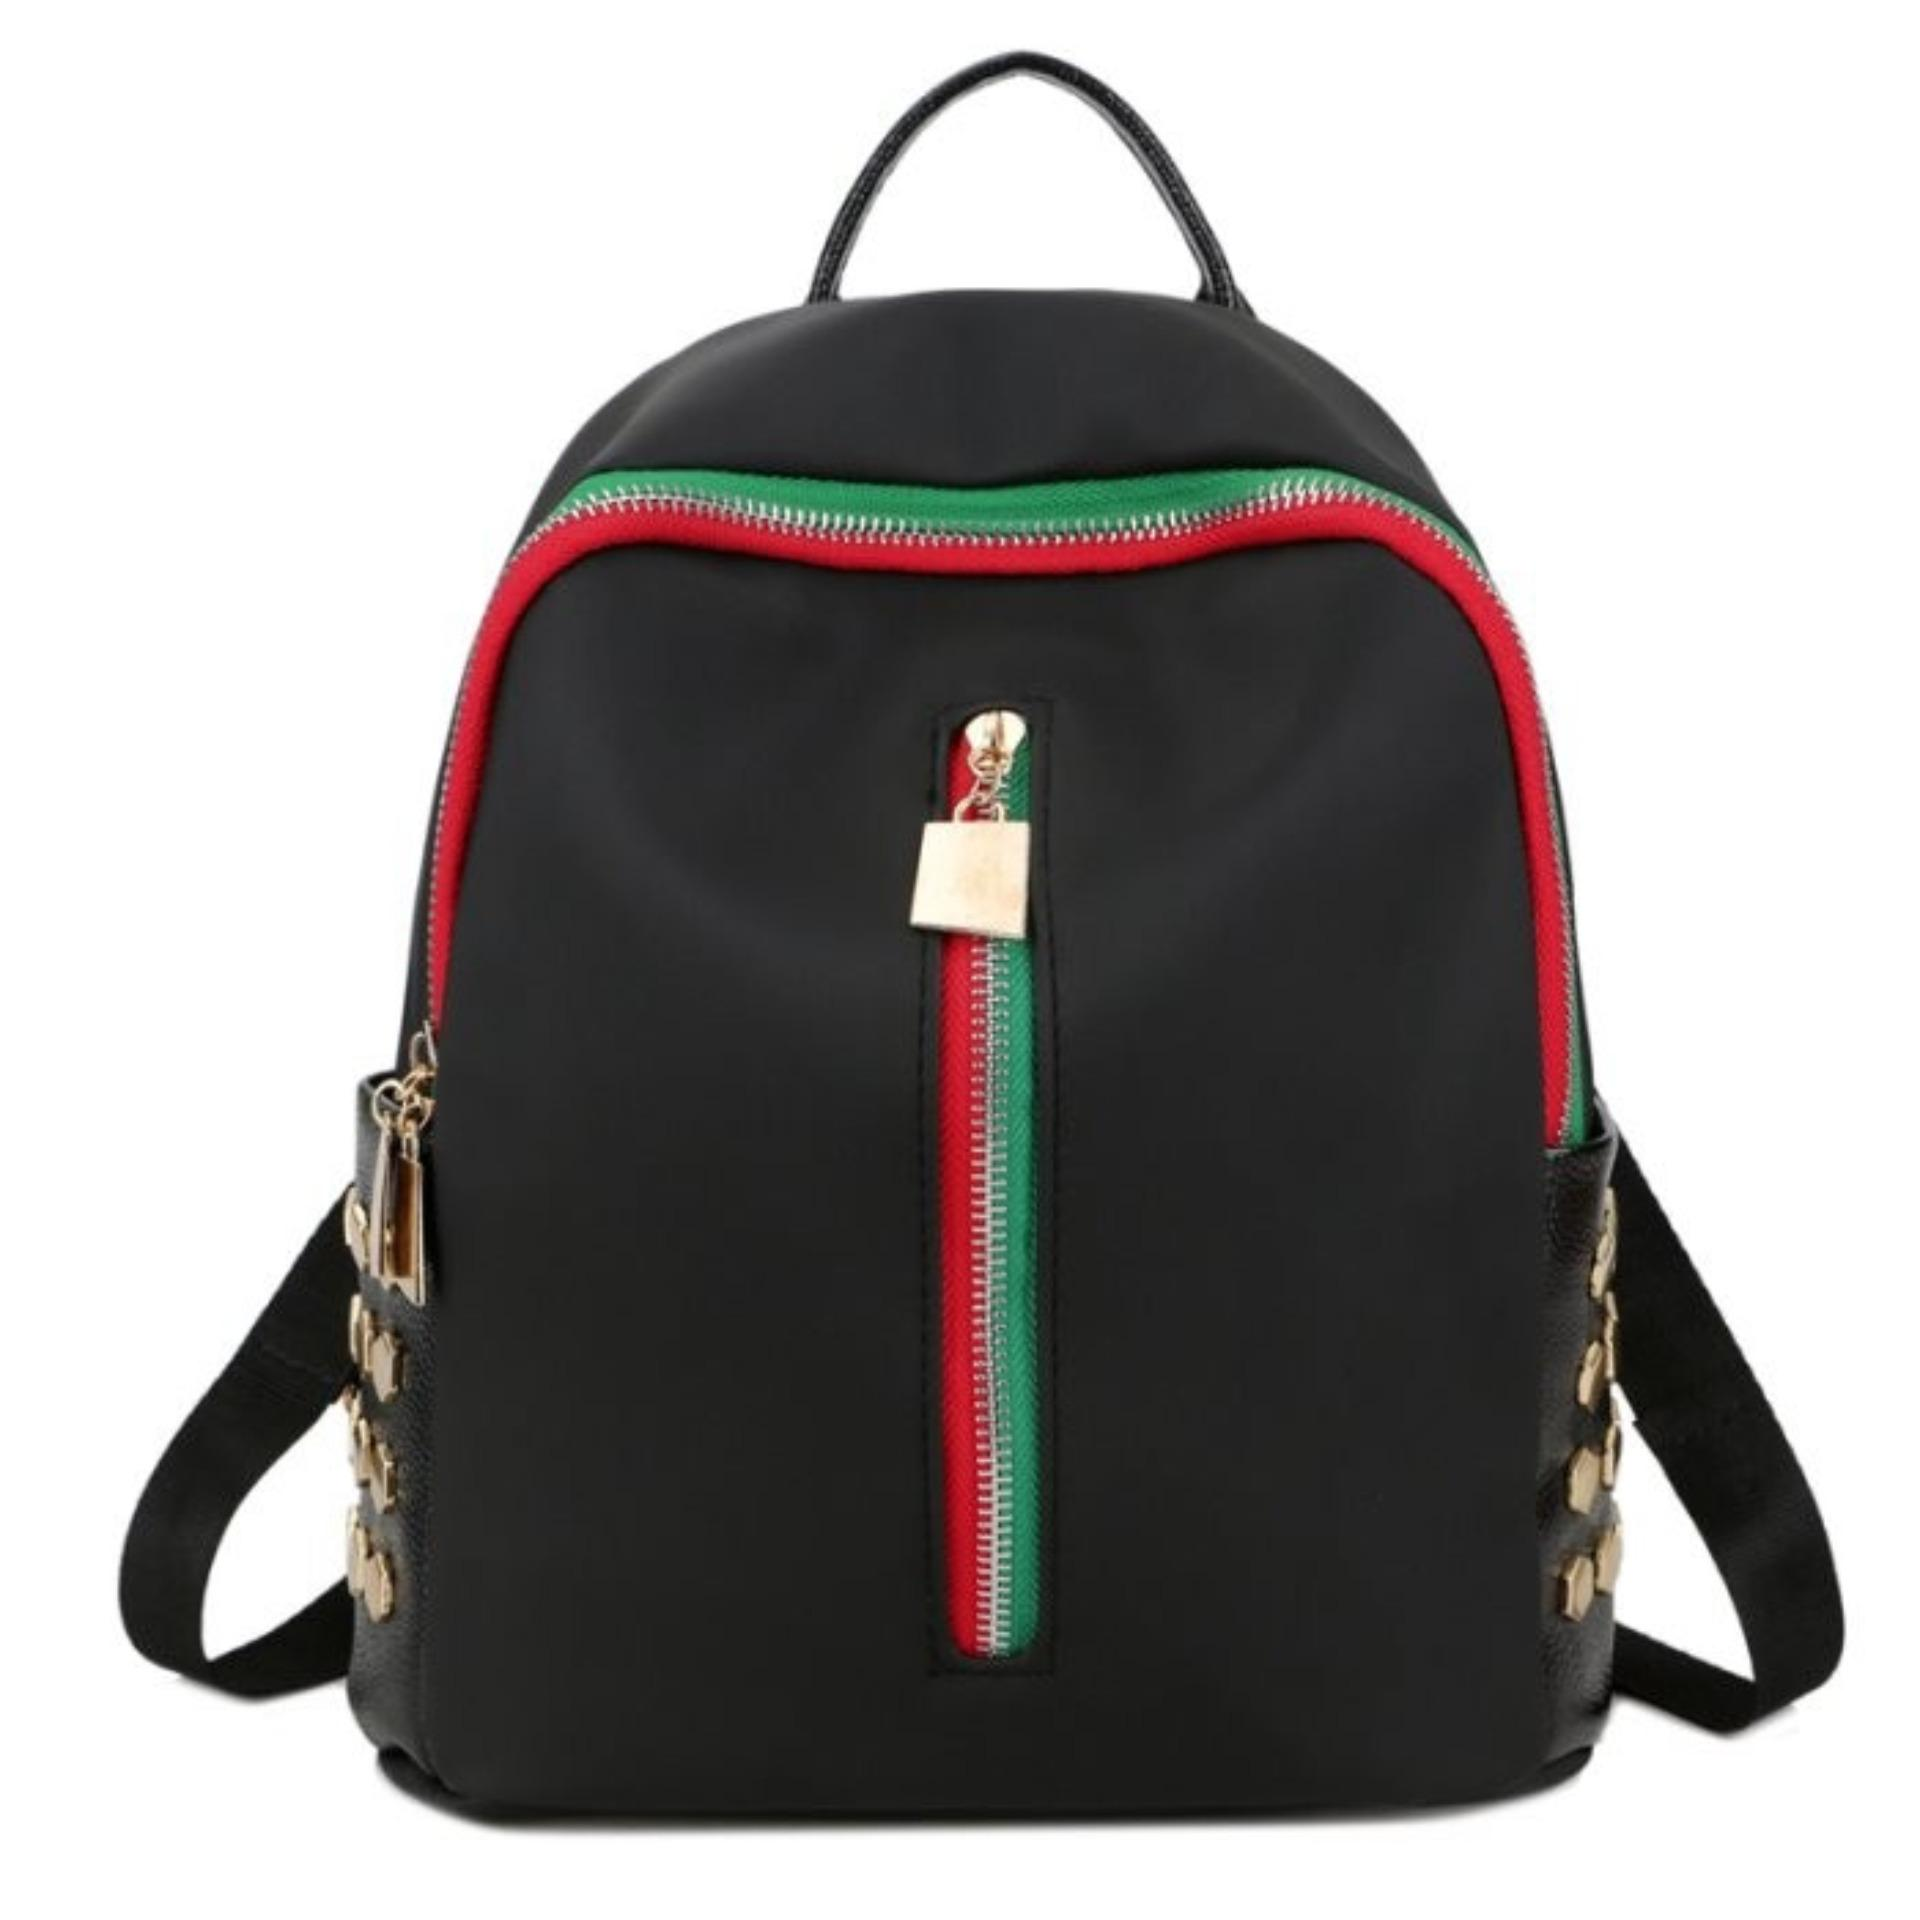 Promo Kgs Tas Ransel Mini Backpack Wanita Casual Red Green Vertical Zipper Hitam Murah